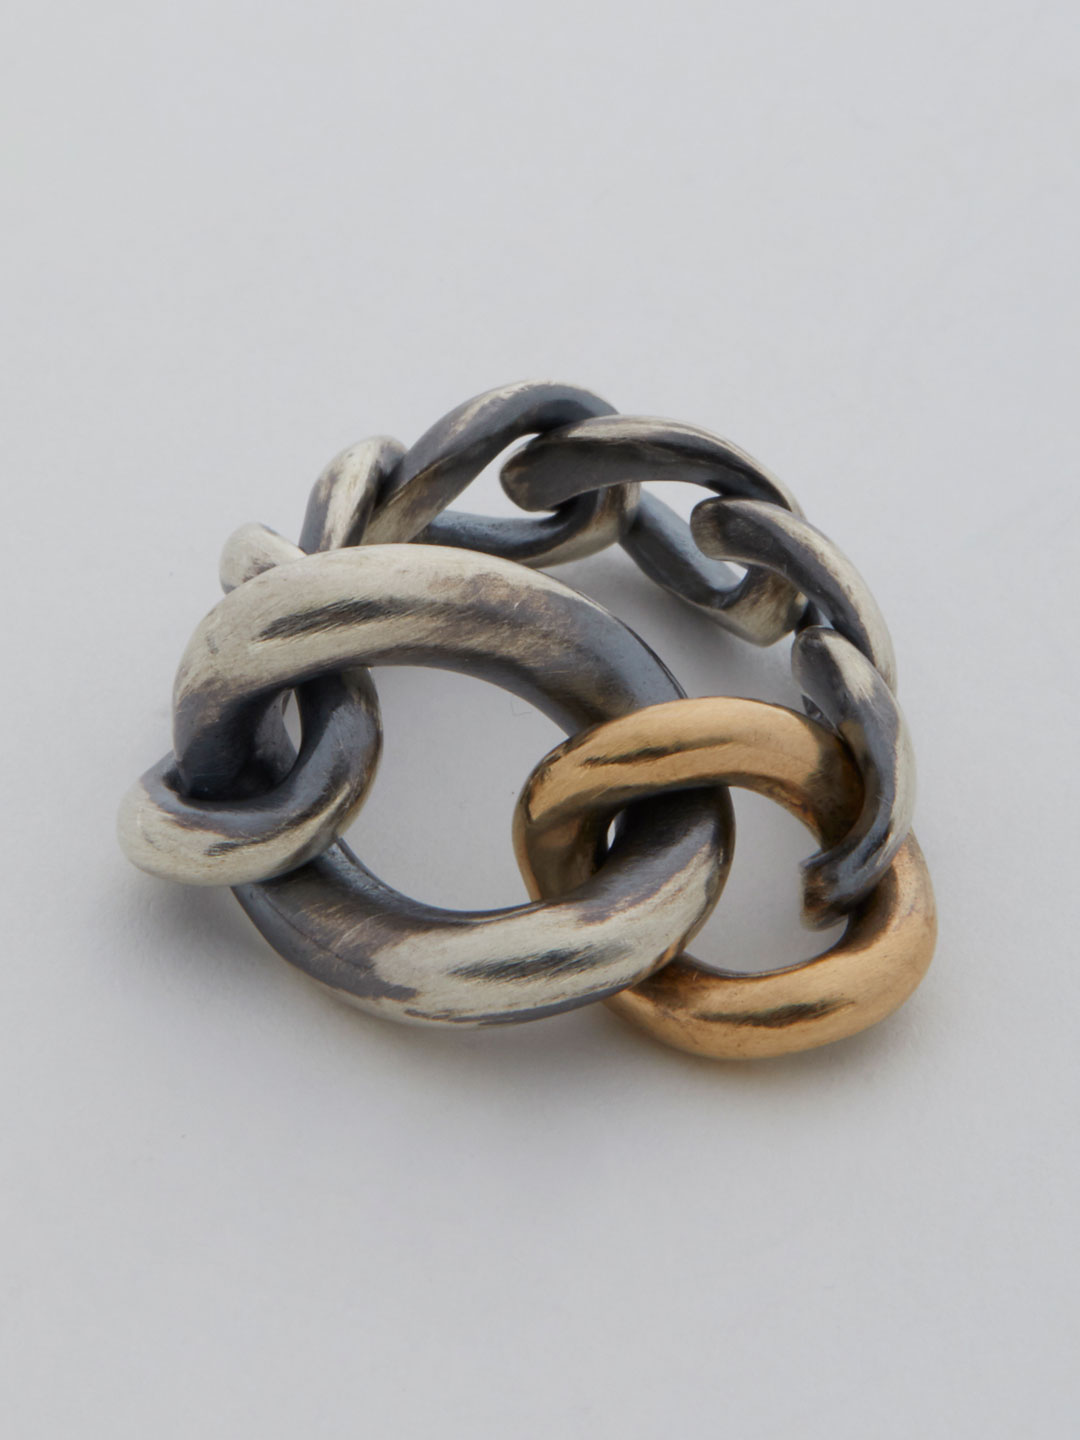 Humete Chain Ring 14 #13  - Silver